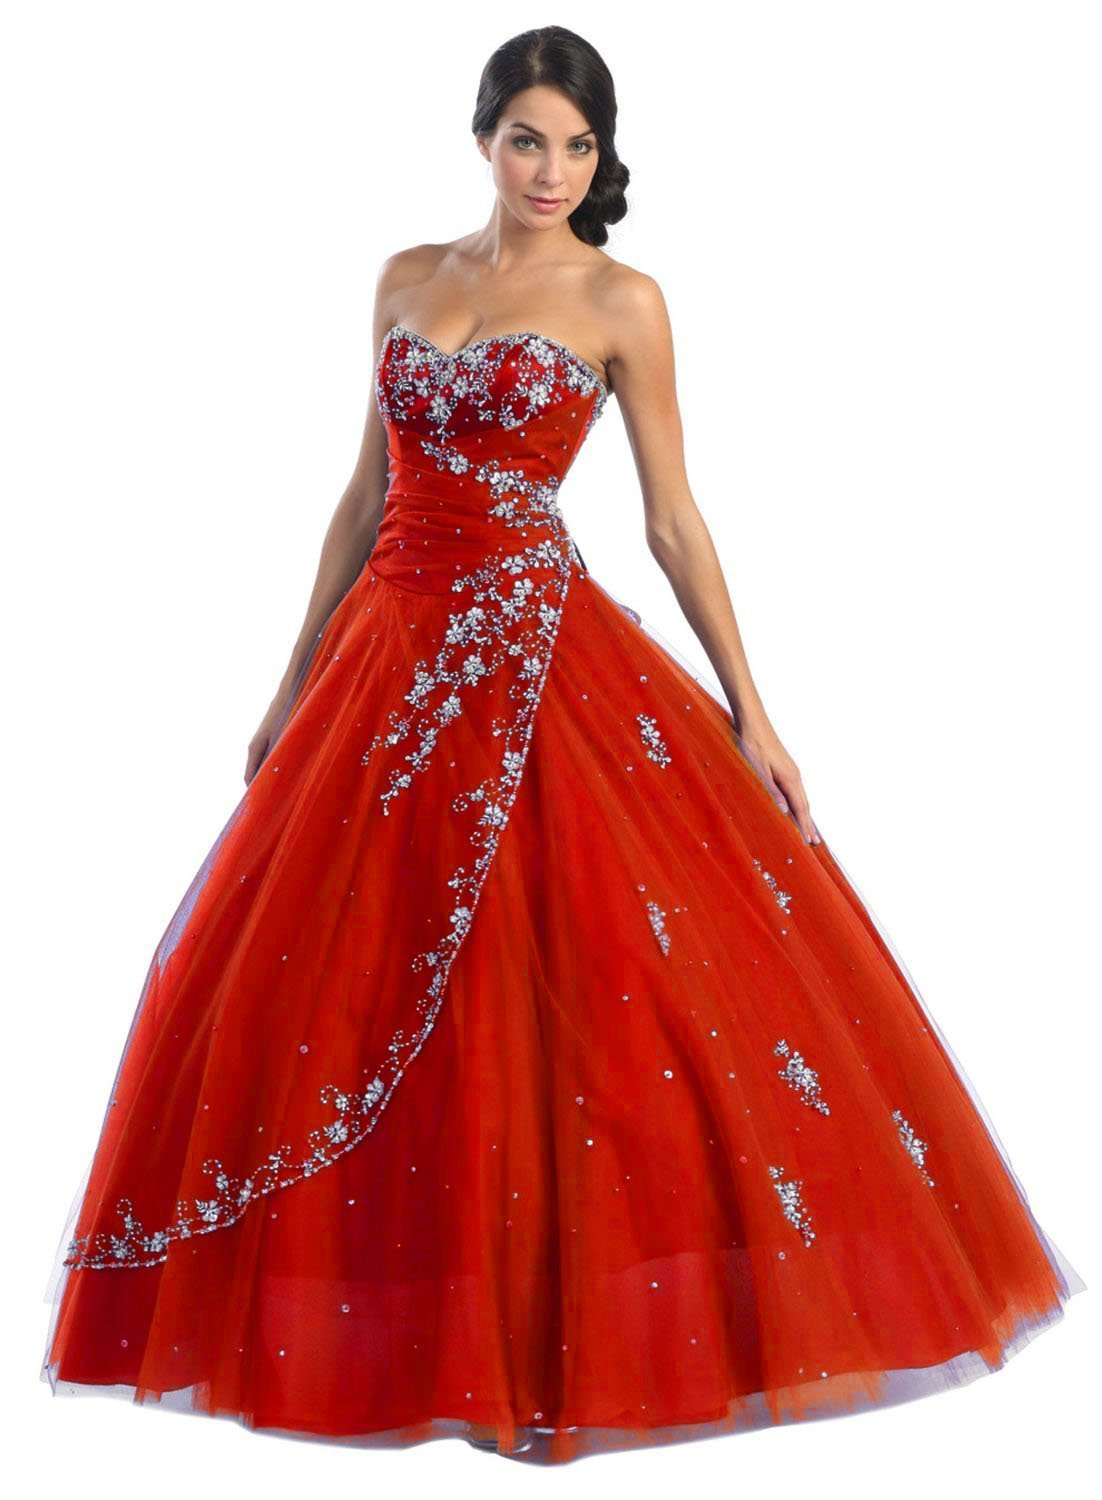 strapless red wedding dress